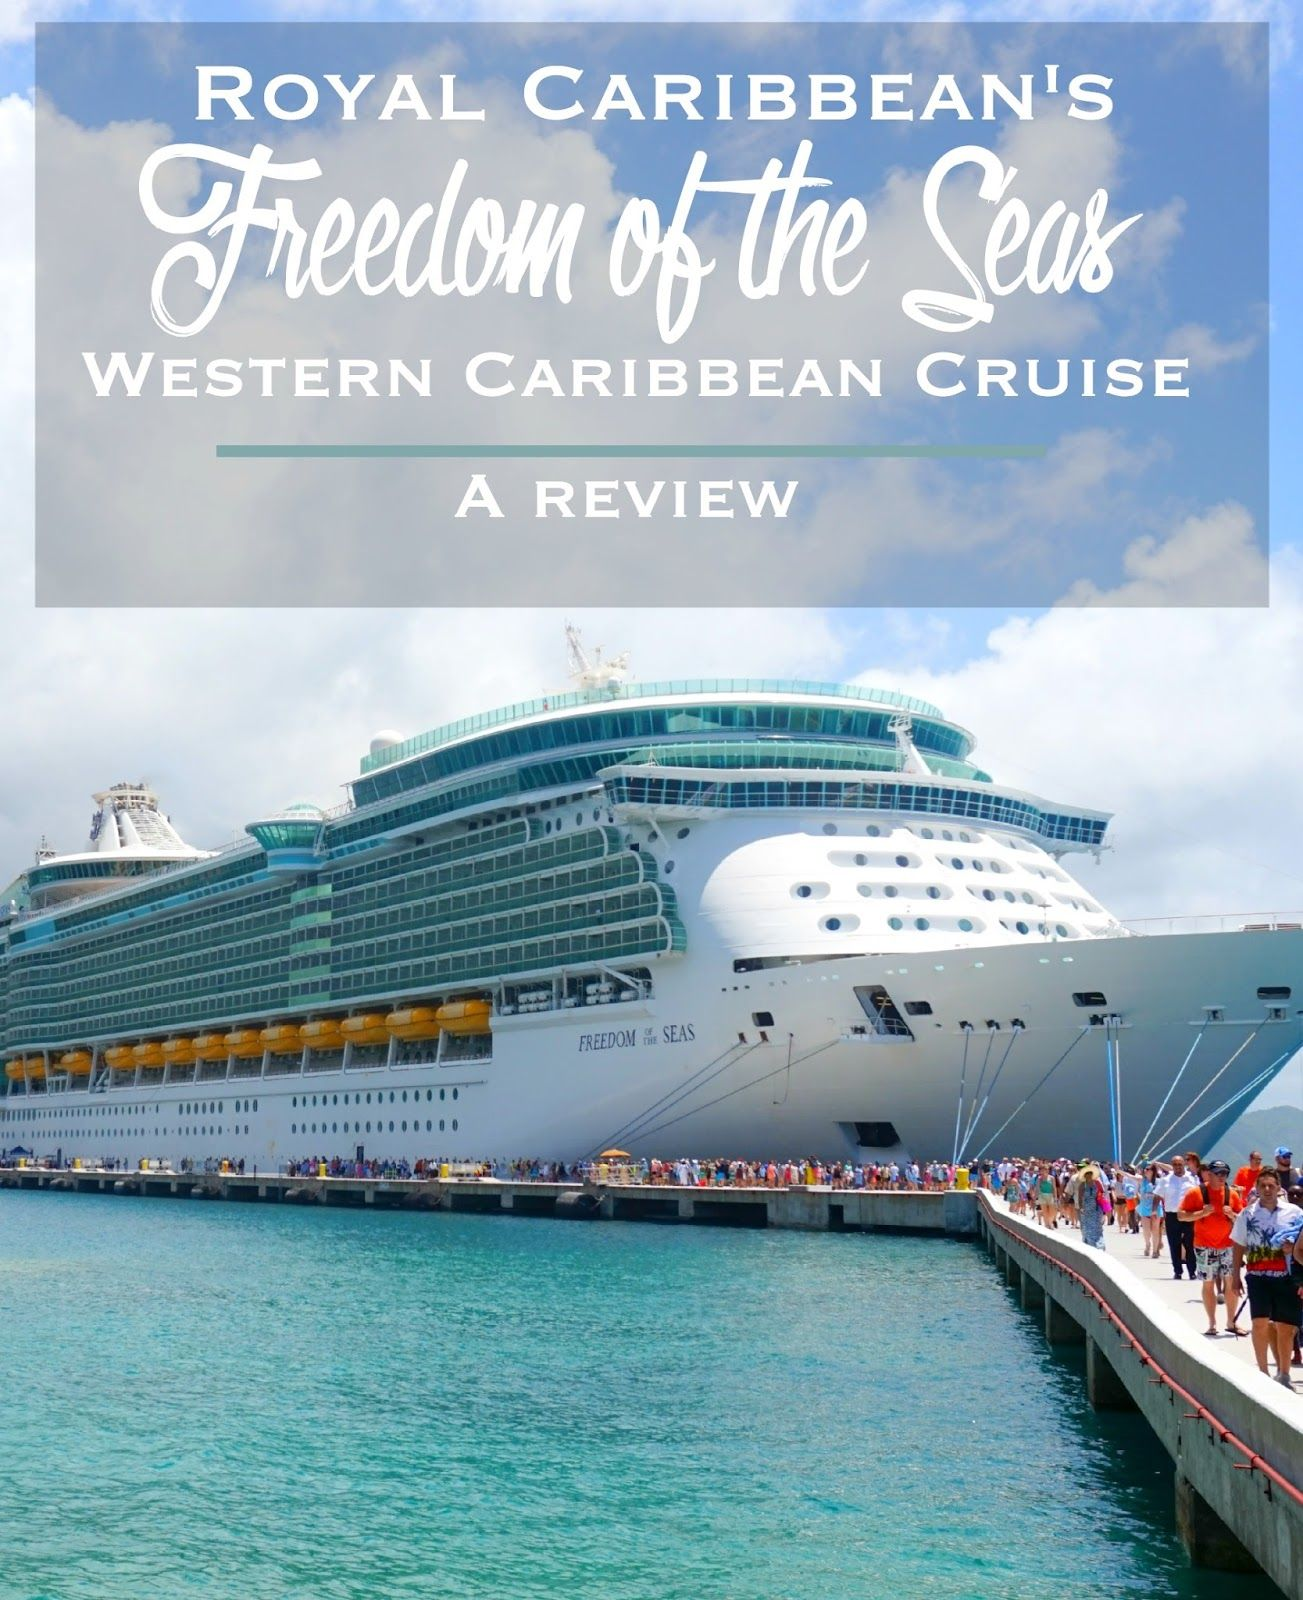 Royal Caribbean's Freedom Of The Seas Western Caribbean